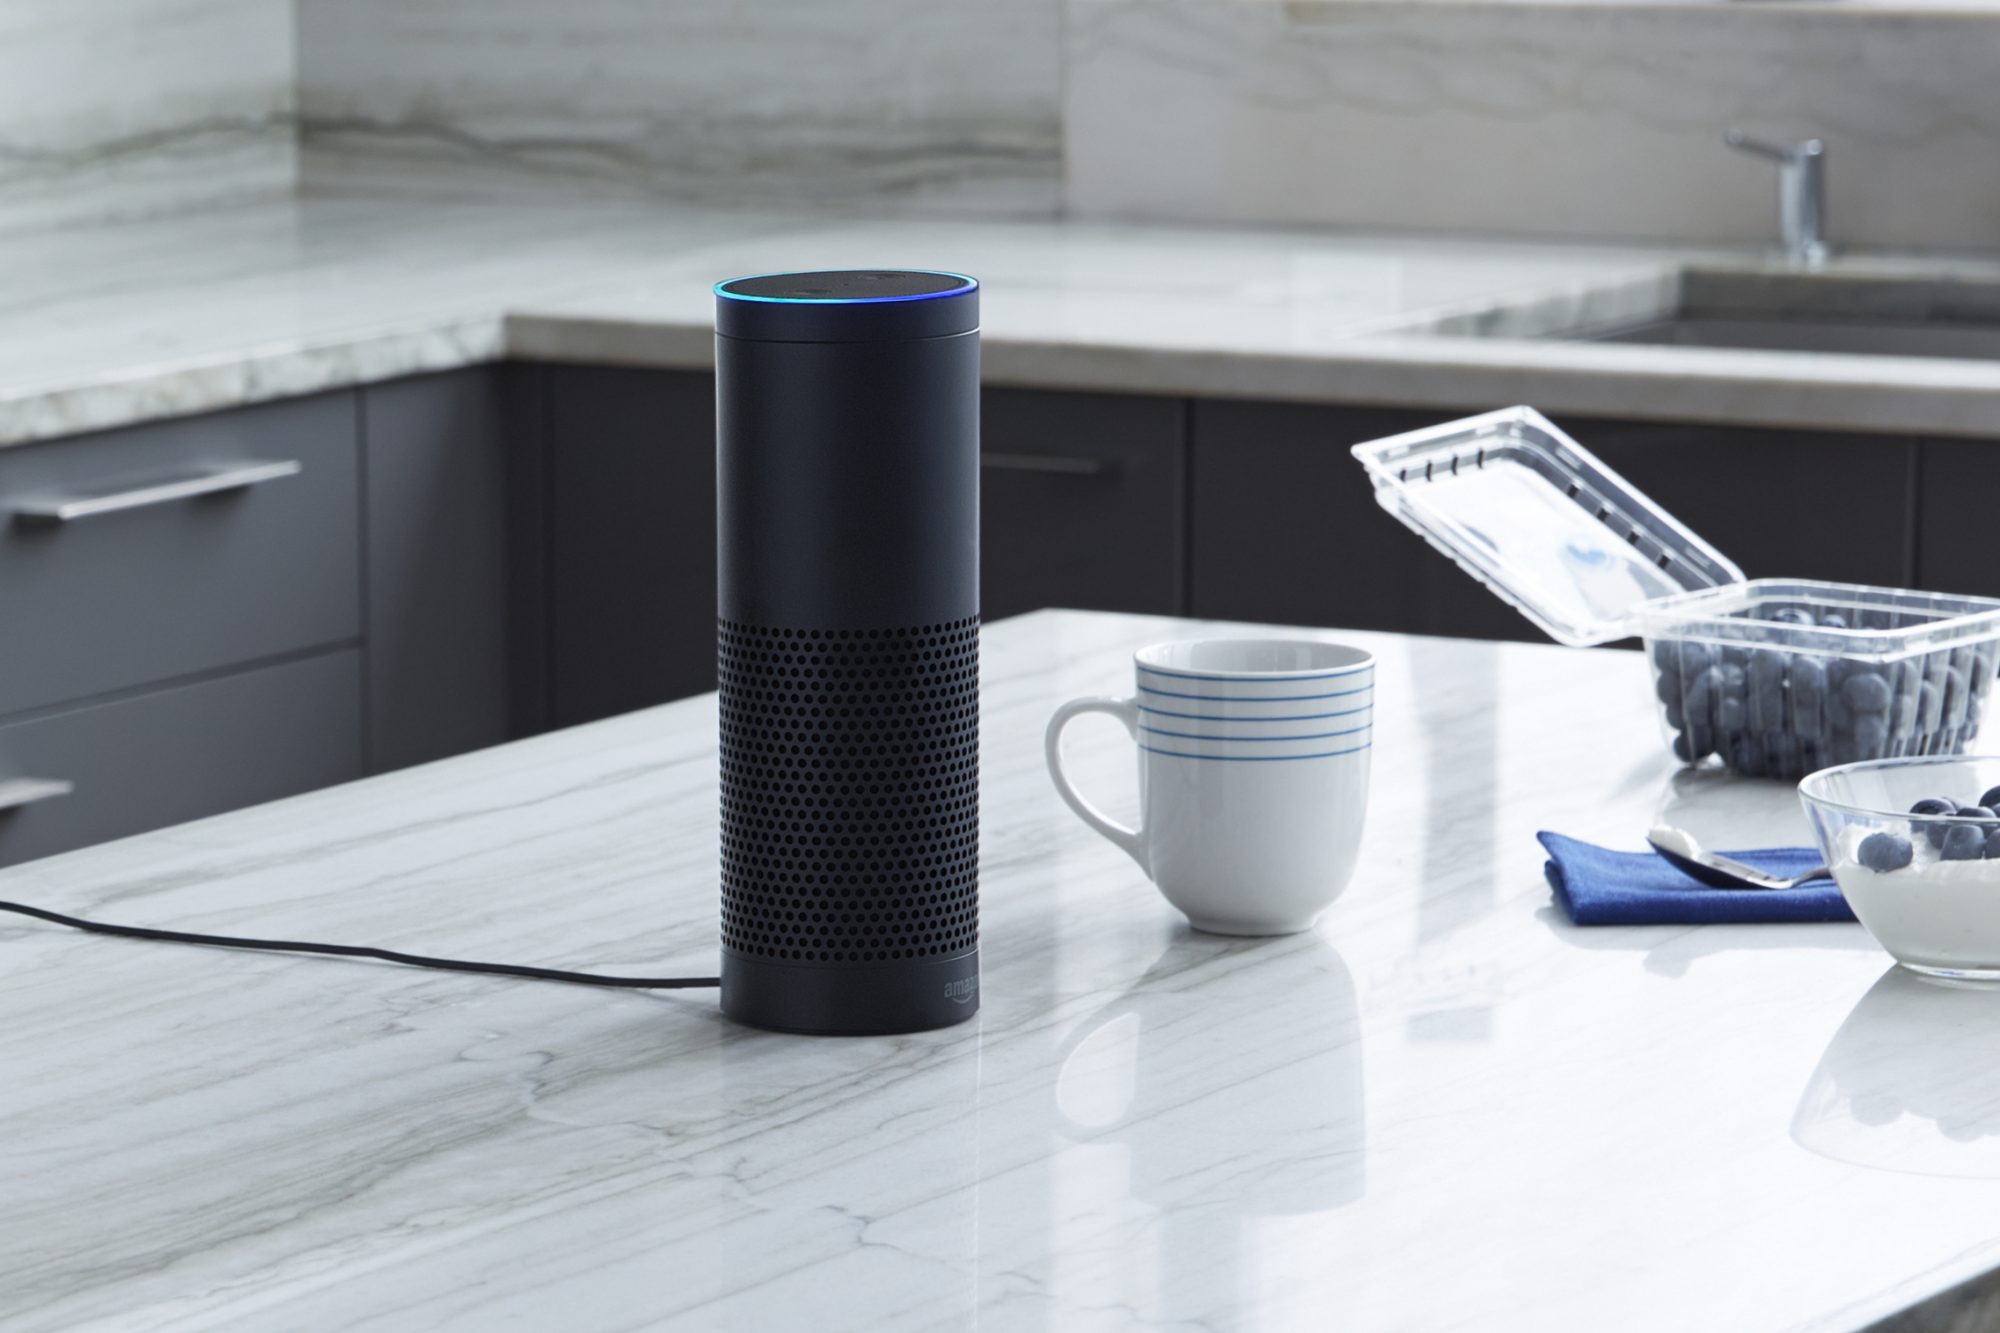 The Amazon Echo Is Crazy Cheap for Prime Day This Year